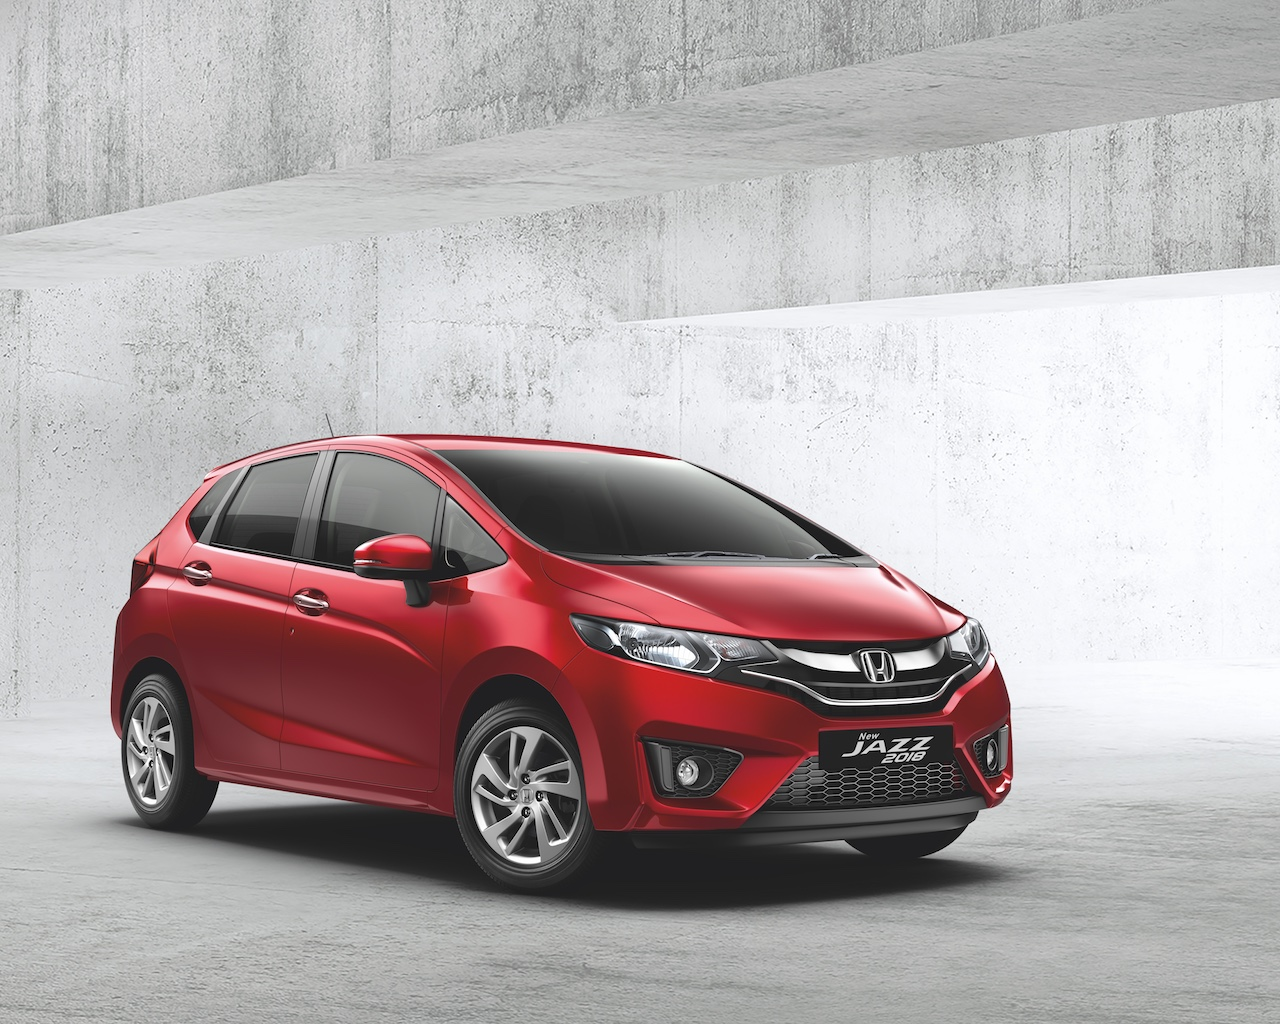 2018 Honda Jazz Facelift Launched in India 2